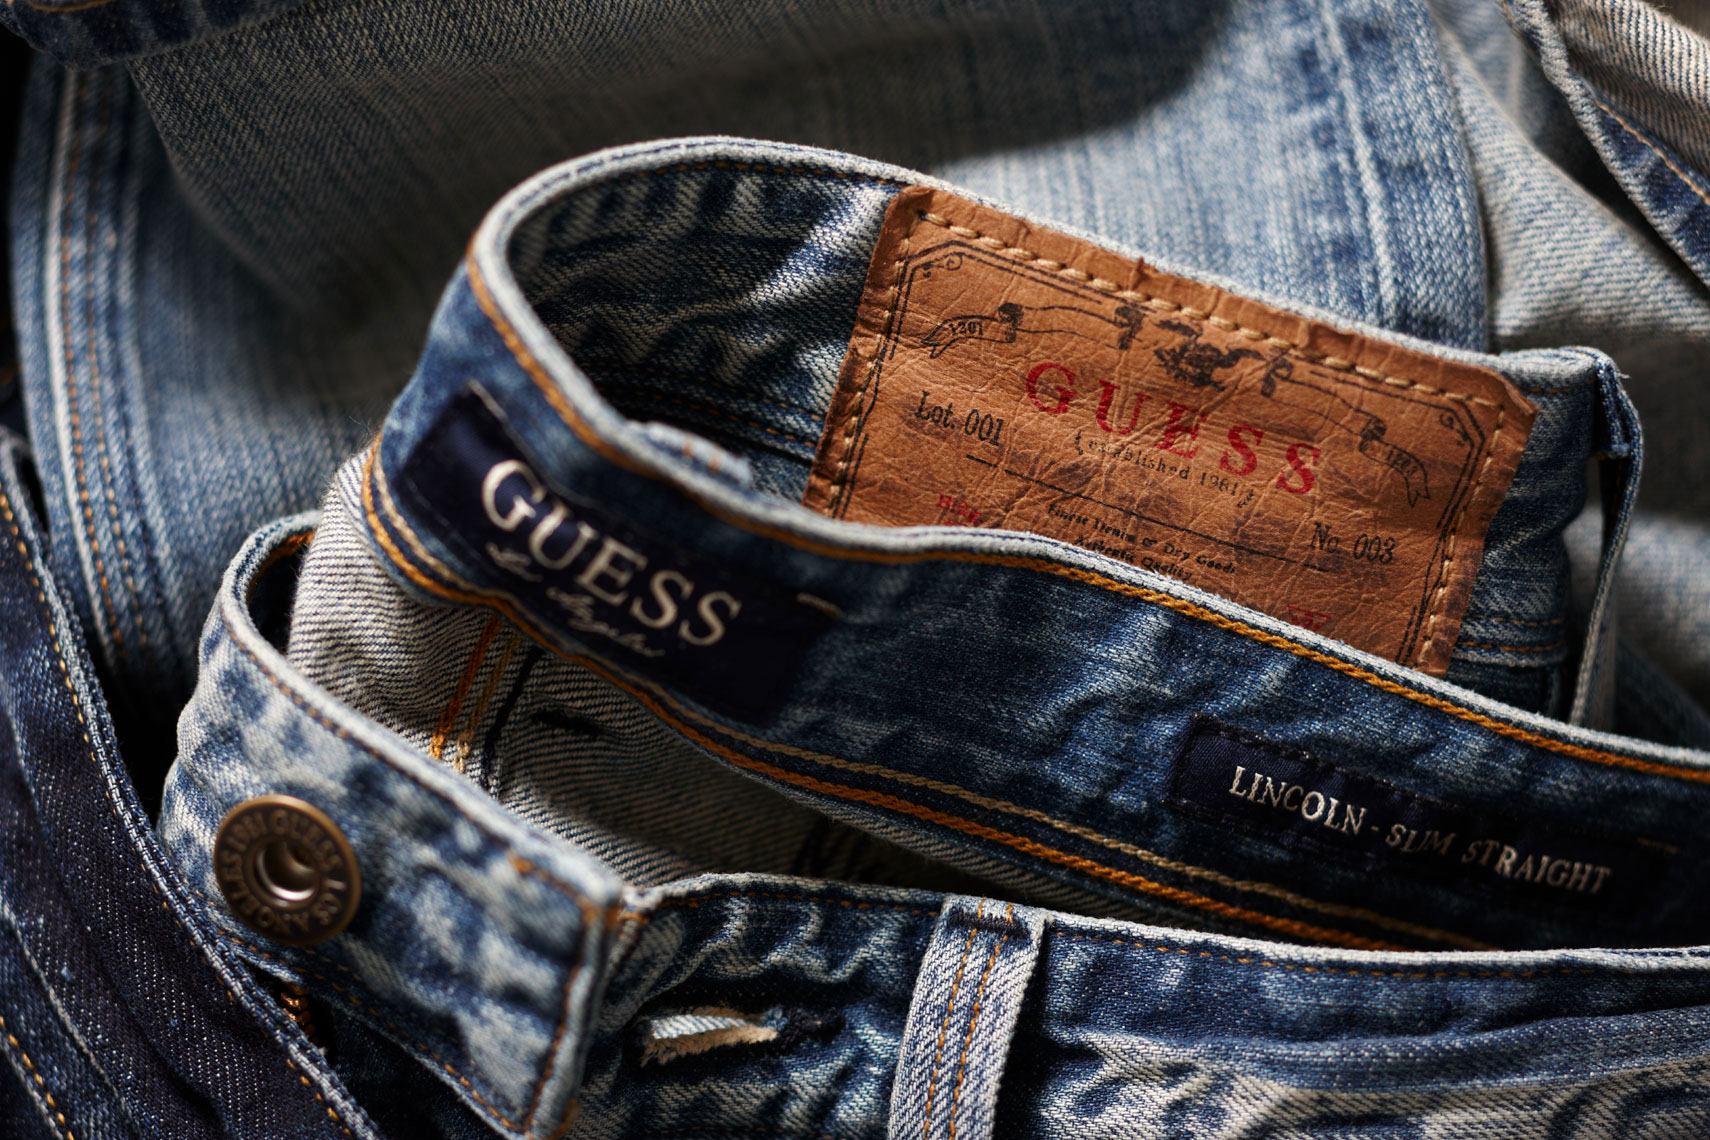 detail of waistbands of light and dark denim jeans